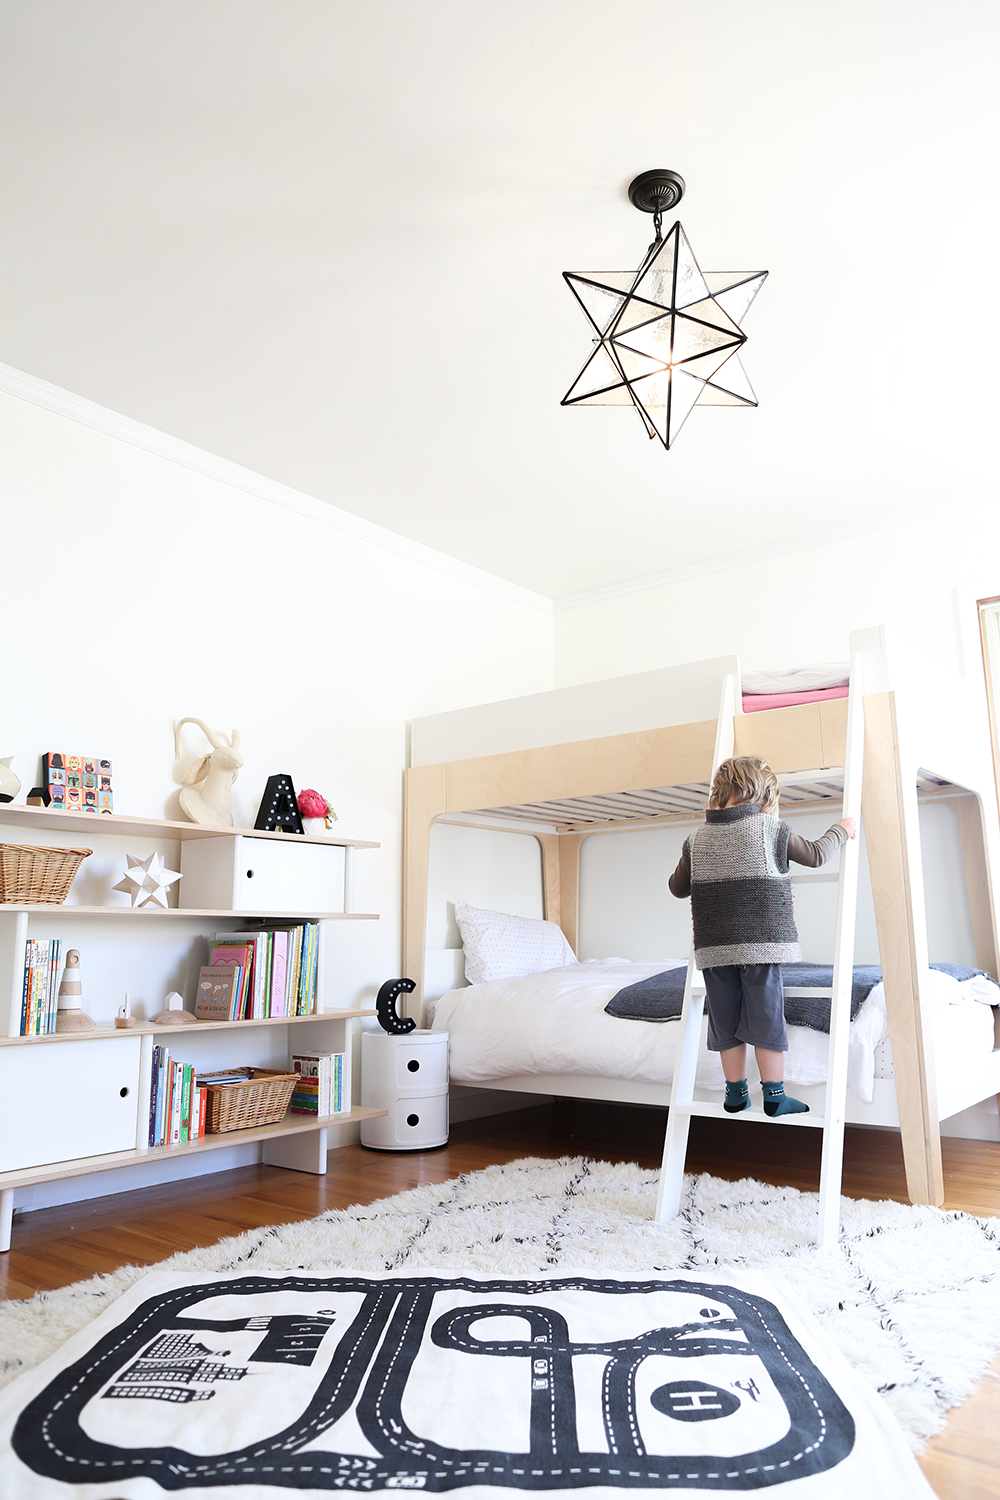 Copy Cat Chic - Boy and Girl shared kid's bedroom using neutrals, whites and lots of texture as a base for color and kid's furniture & accessories from Wayfair